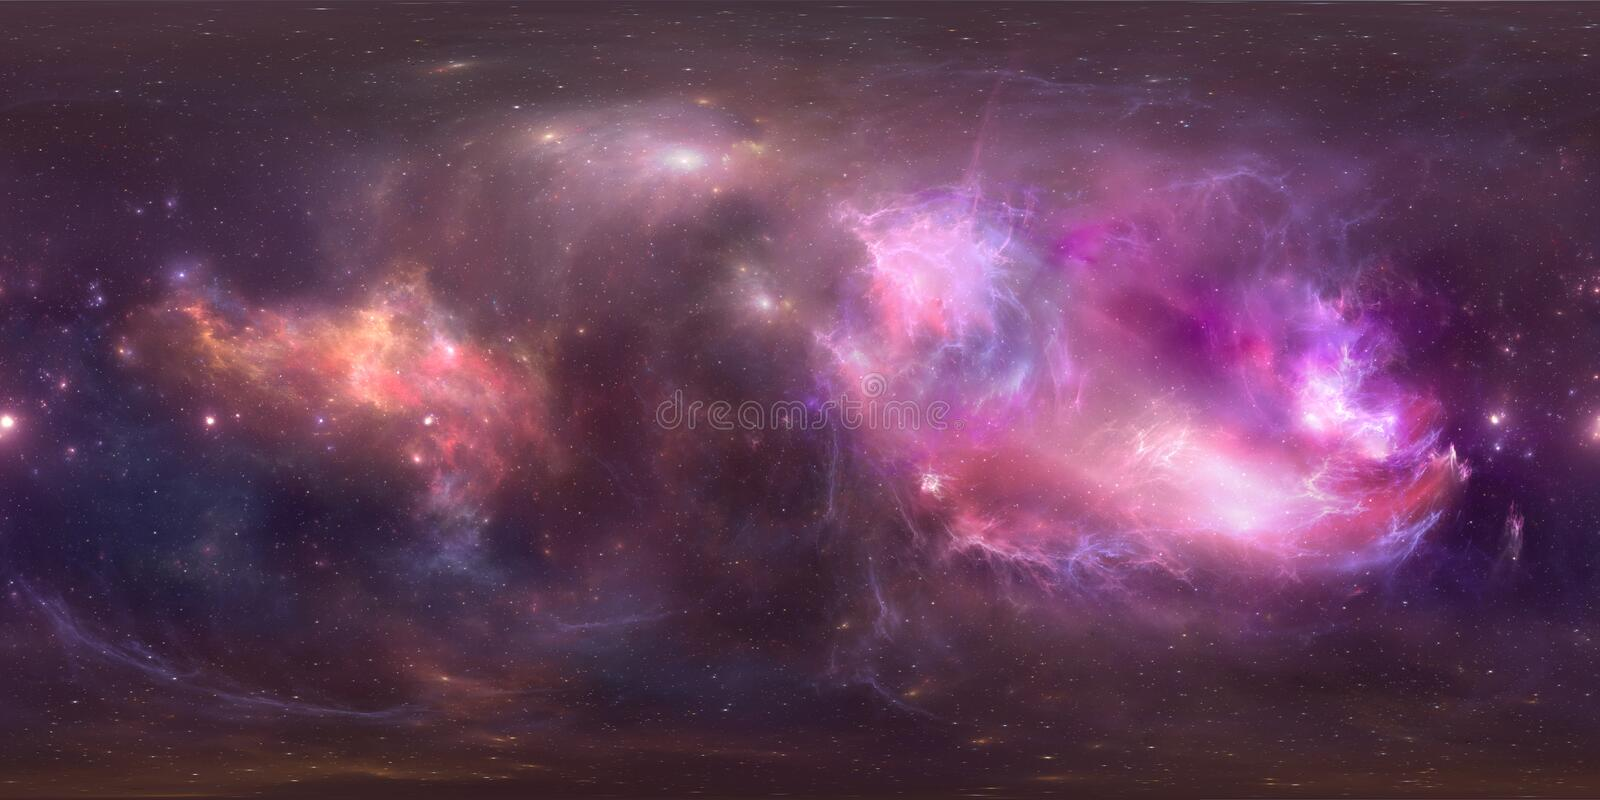 Space background with purple nebula and stars. Panorama, environment 360 HDRI map. Equirectangular projection, spherical panorama. vector illustration